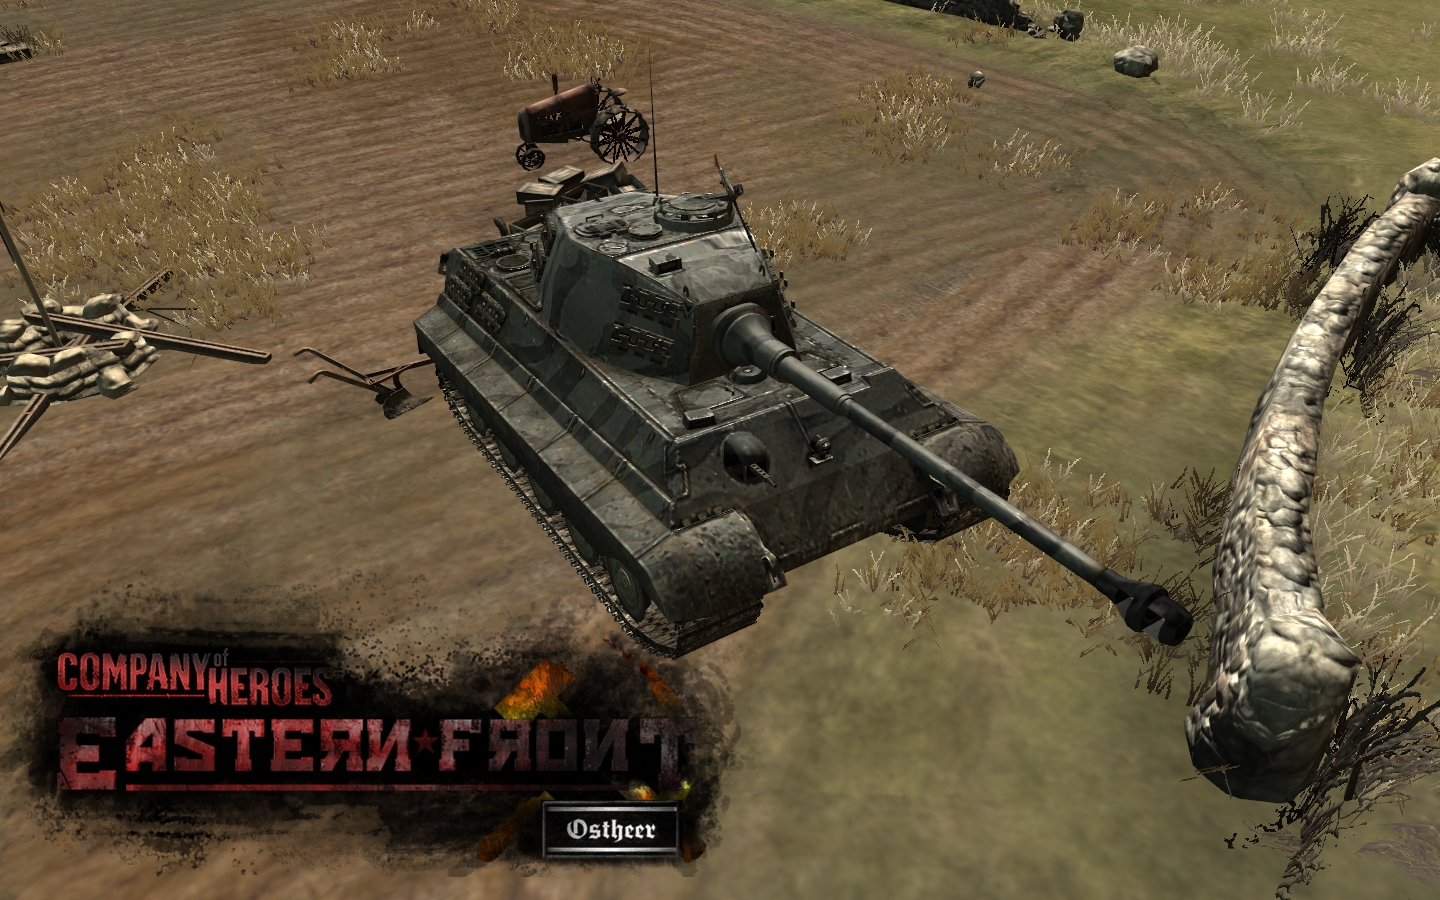 Tiger Ii Ausf B King Tiger Henschel Version Image Company Of Heroes Eastern Front Mod For Company Of Heroes Opposing Fronts Mod Db